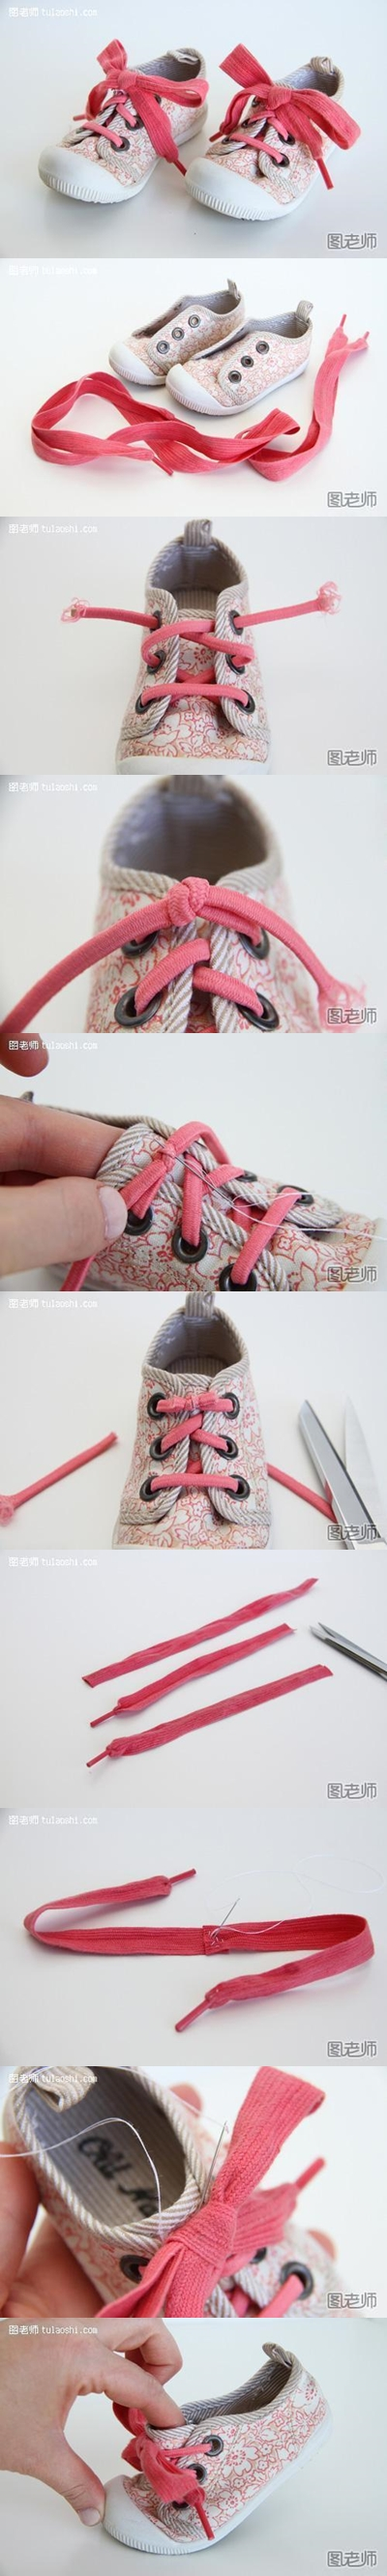 How to make easy shoe lace for kids step by step DIY instructions